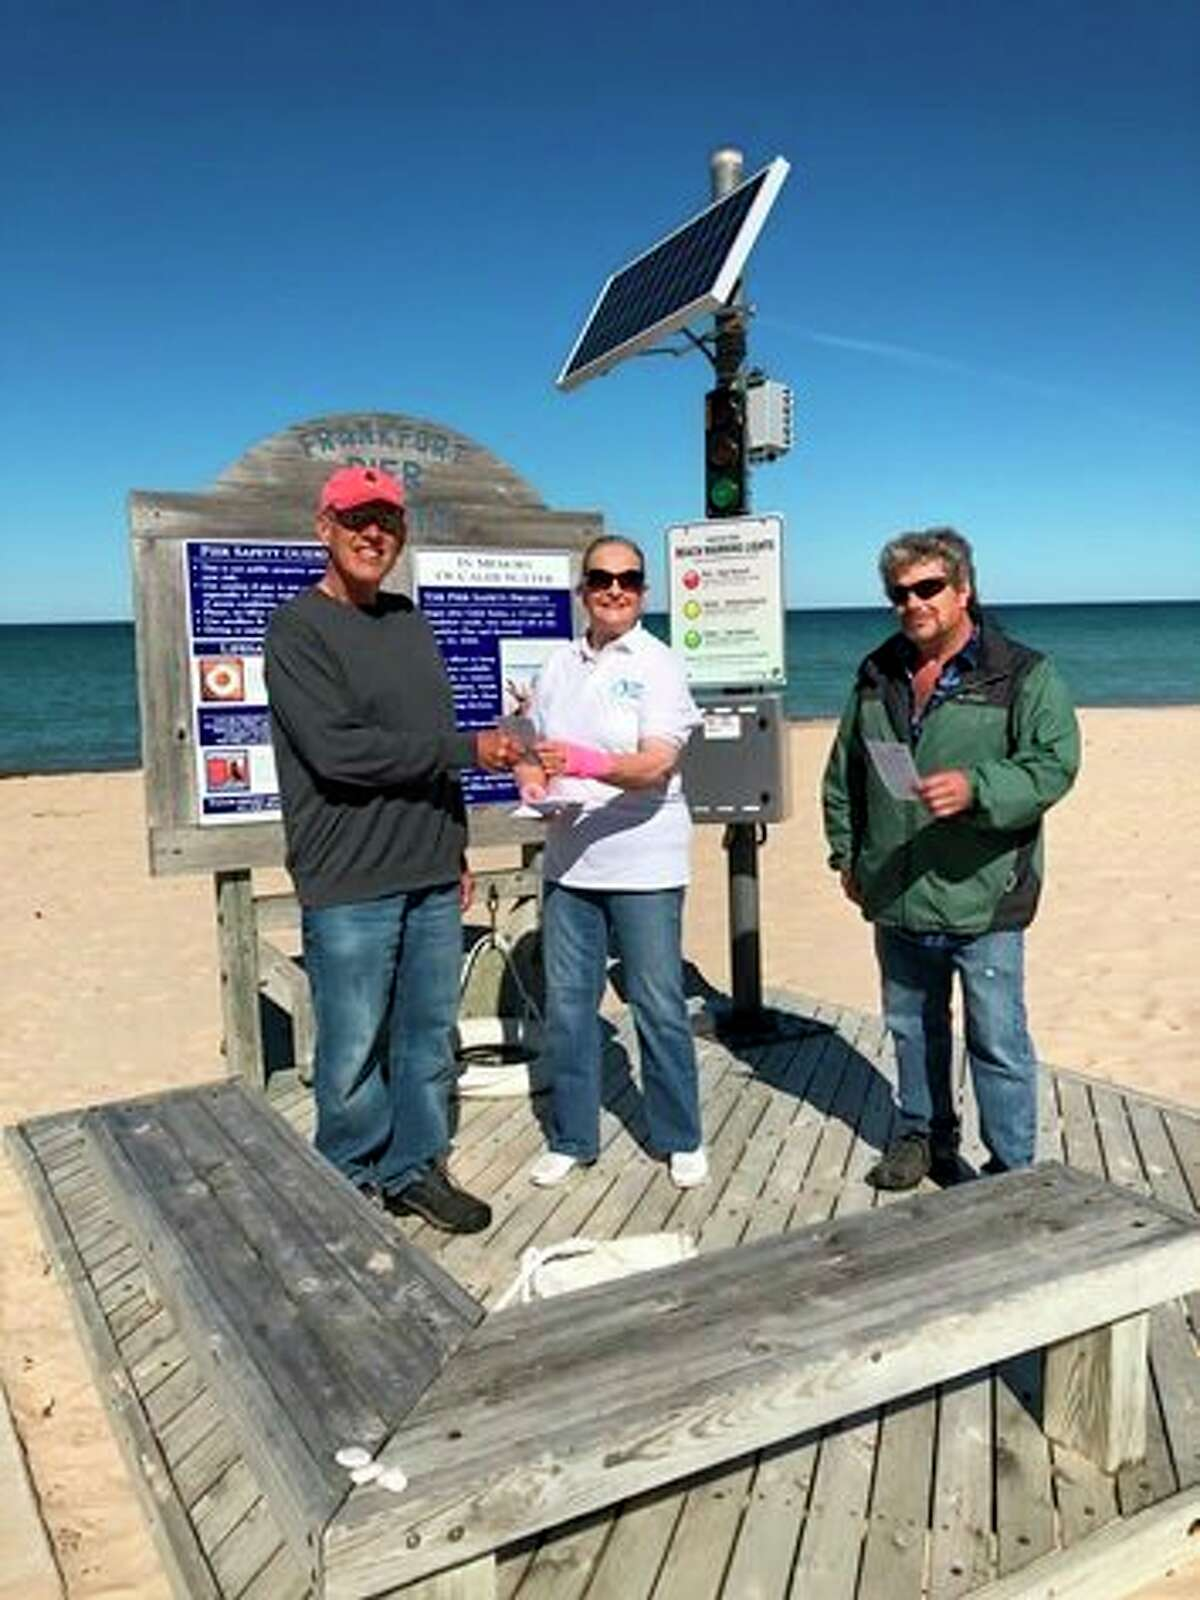 Carol Gunkler Johnson hands out water safety information by the SwimSmart warning light on Frankfort's beach (Courtesy Photo)